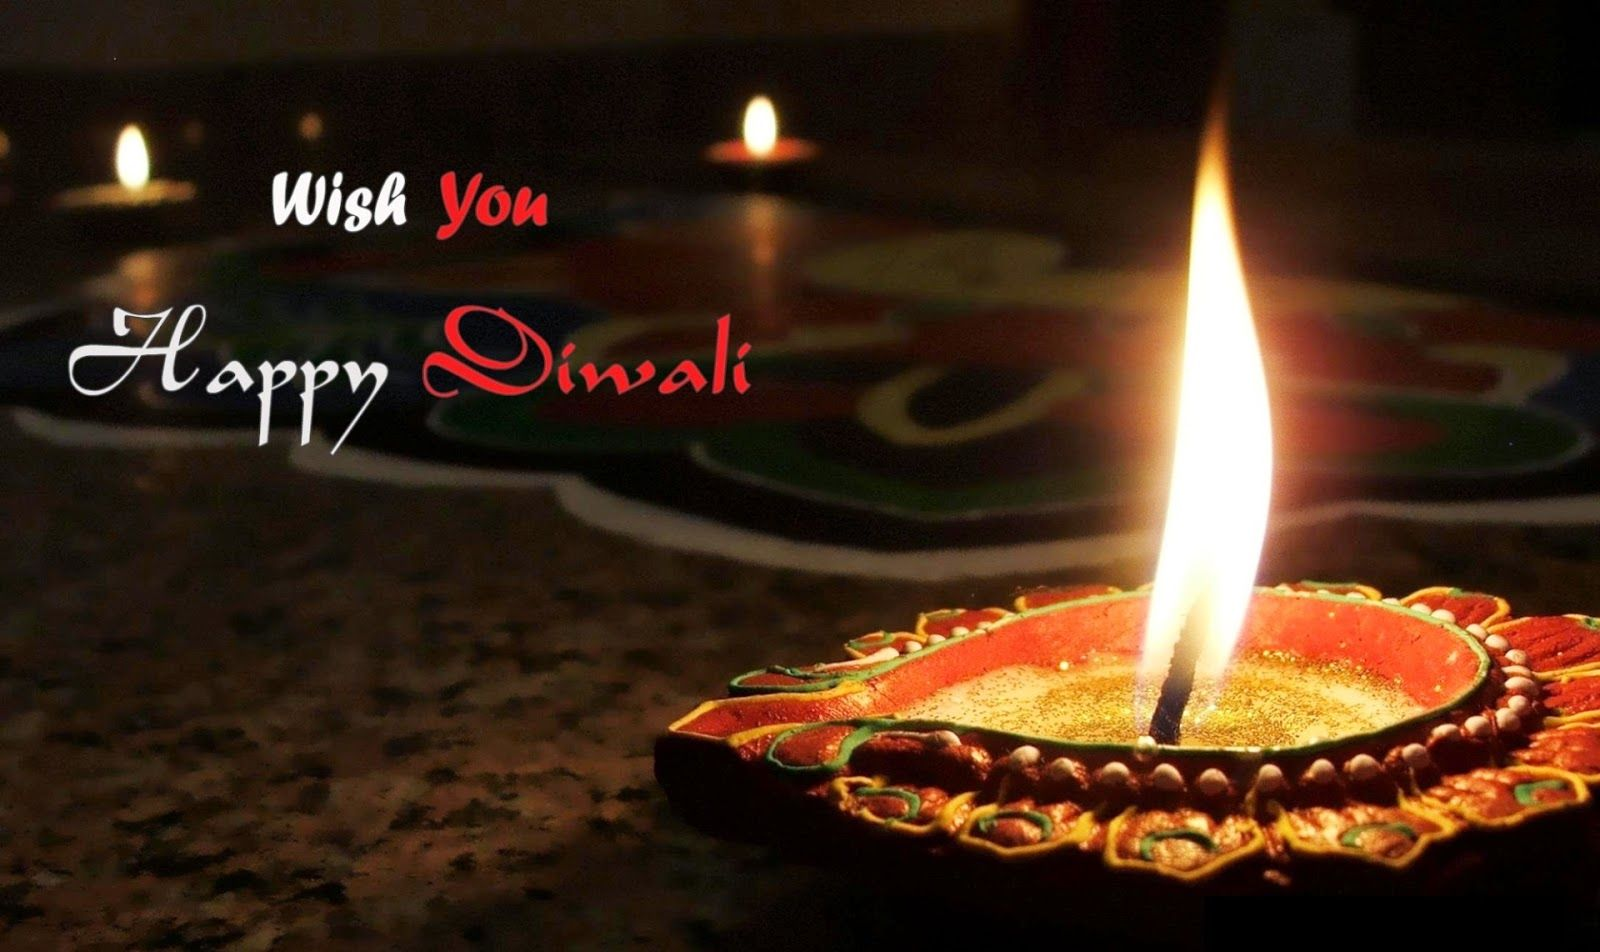 Free Happy Diwali Message for share on WhatsApp Facebook to ... for Deepavali 2017 Celebration  199fiz